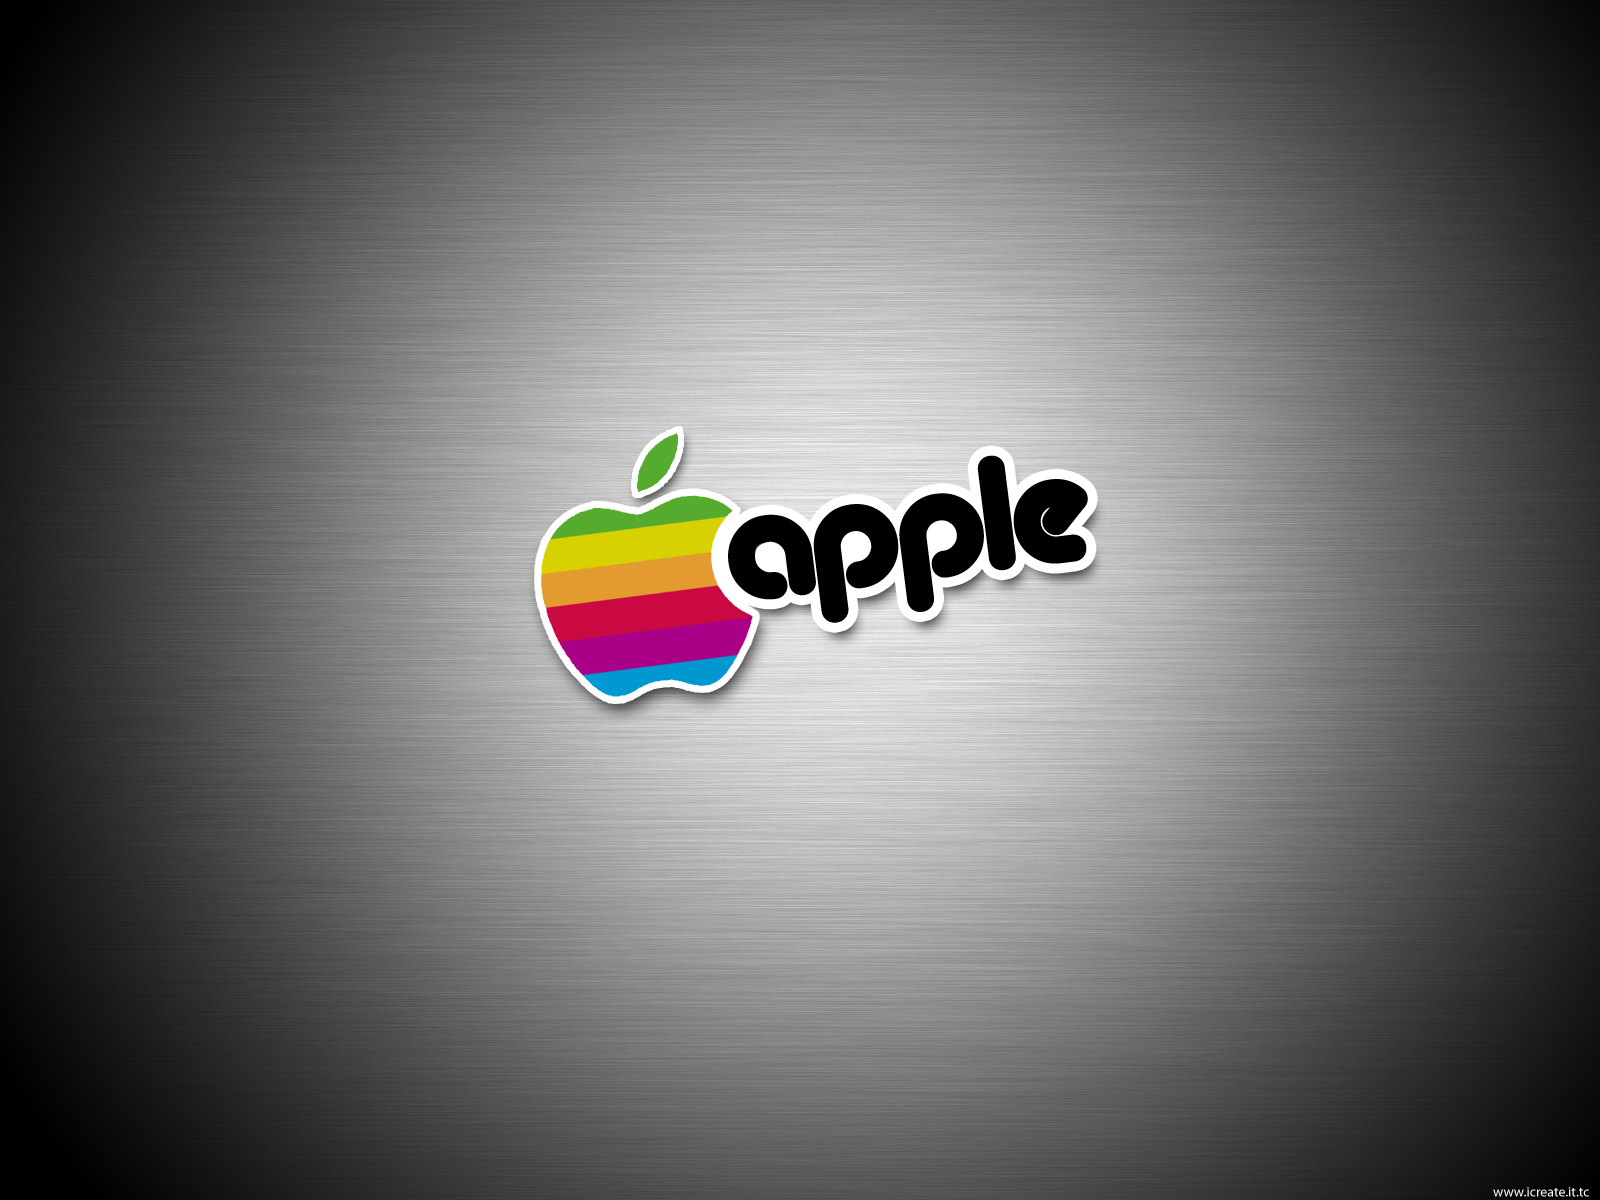 macintosh wallpaper hd apple macintosh wallpaper hd apple macintosh 1600x1200